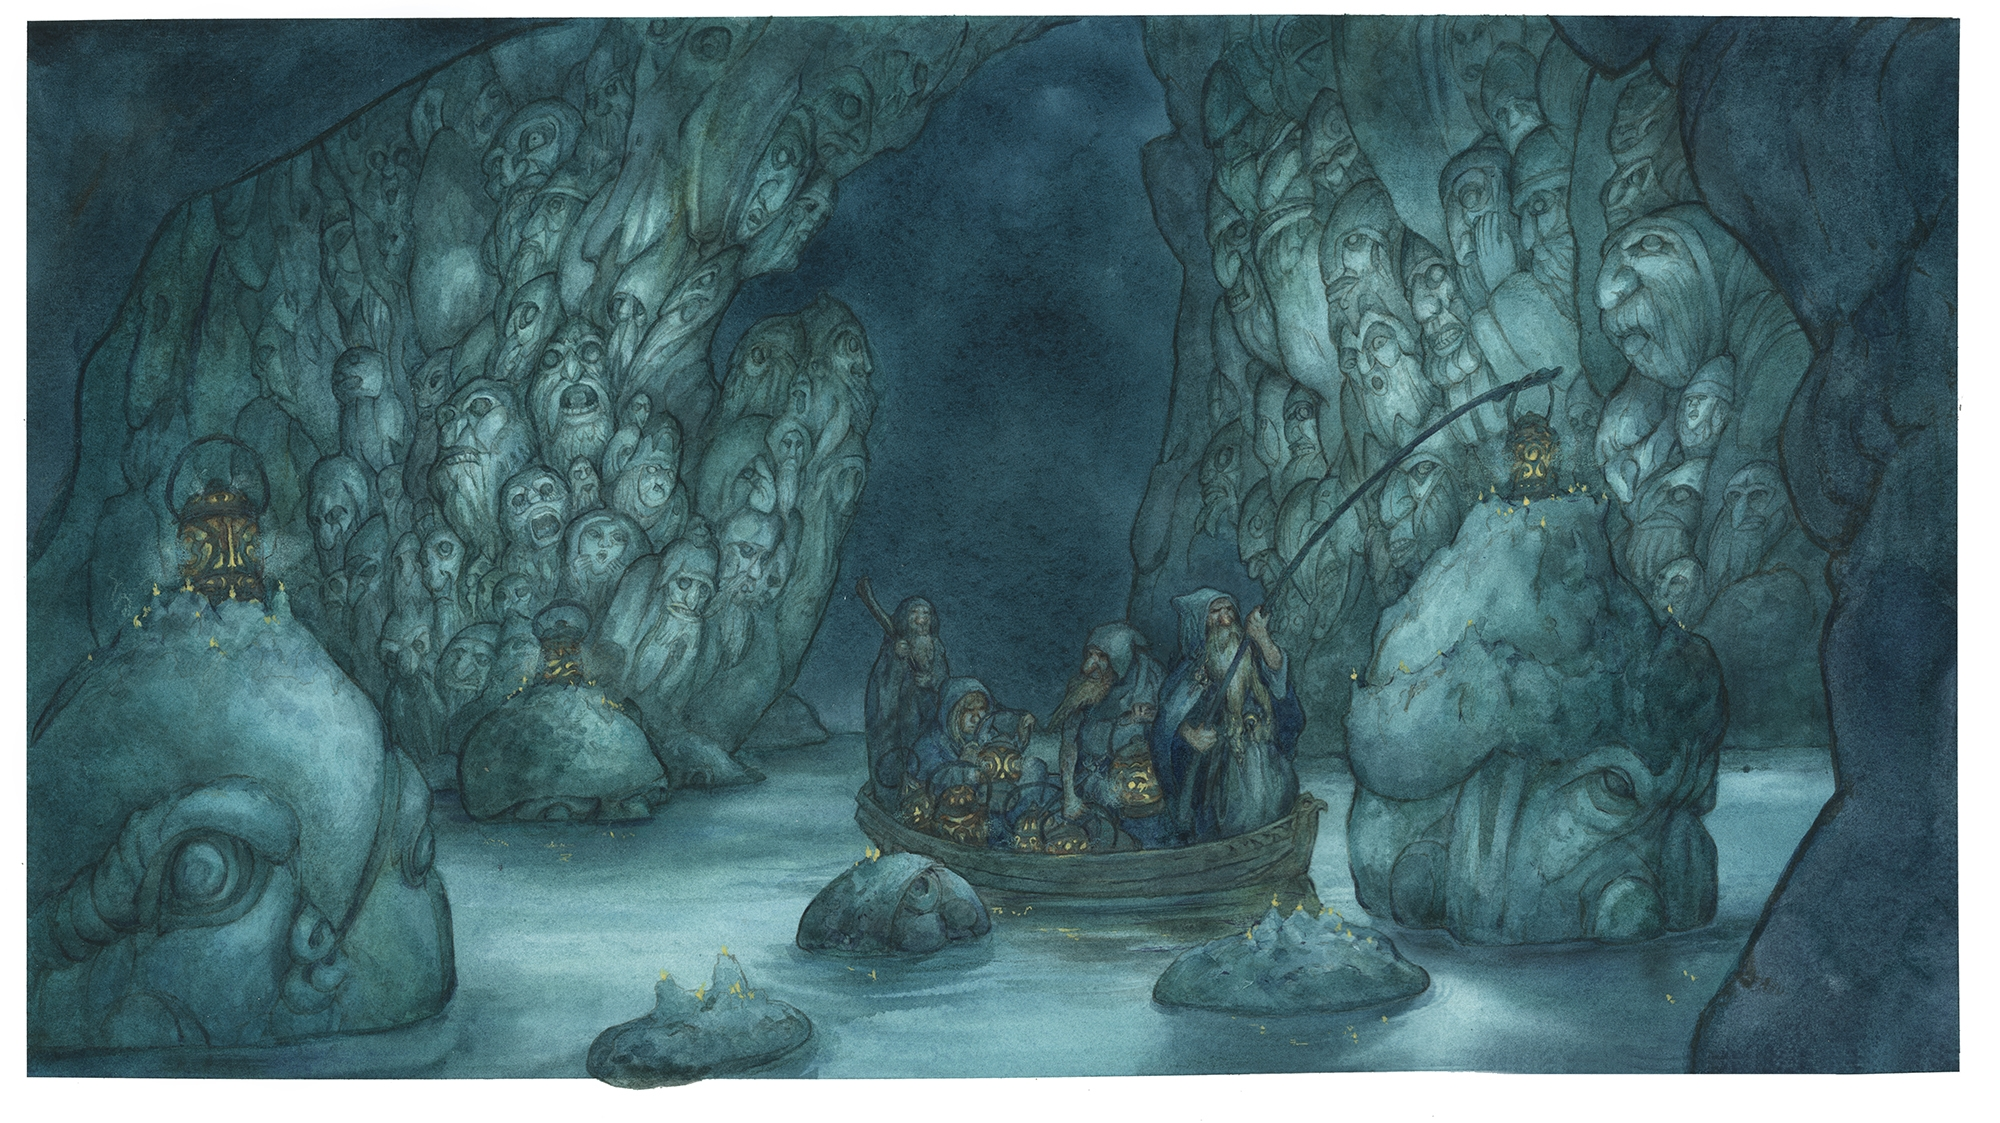 Grotto of the Ancient Ones, Kingdom of the Dwarfs Comic Art